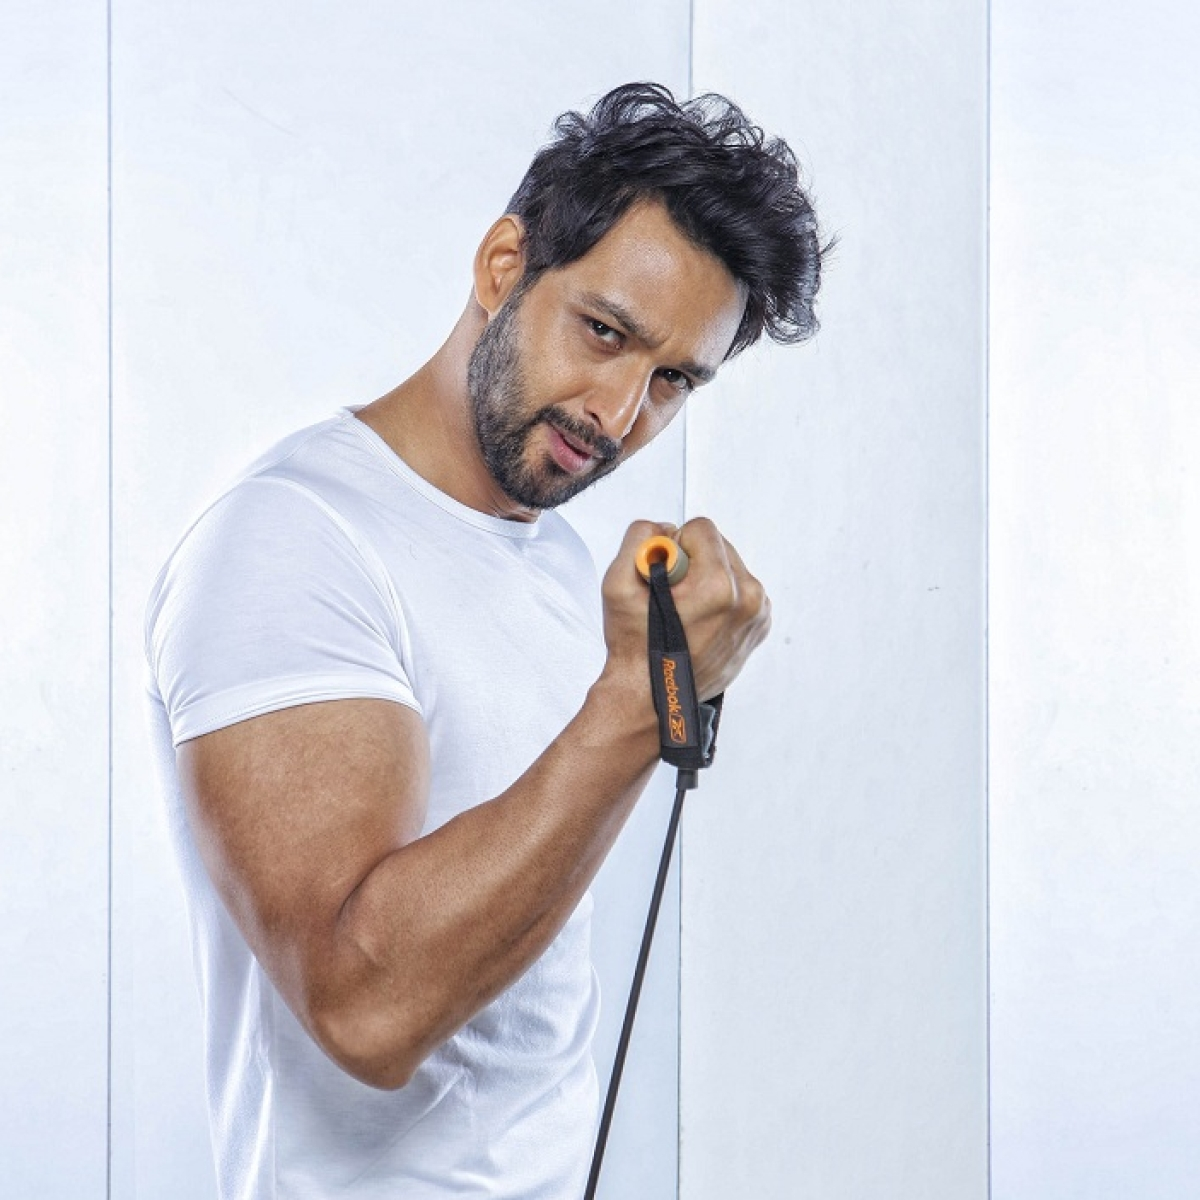 'Mahadev' actor Sourabh Raaj Jain talks about participating in Khatron Ke Khiladi, Rohit Shetty and more